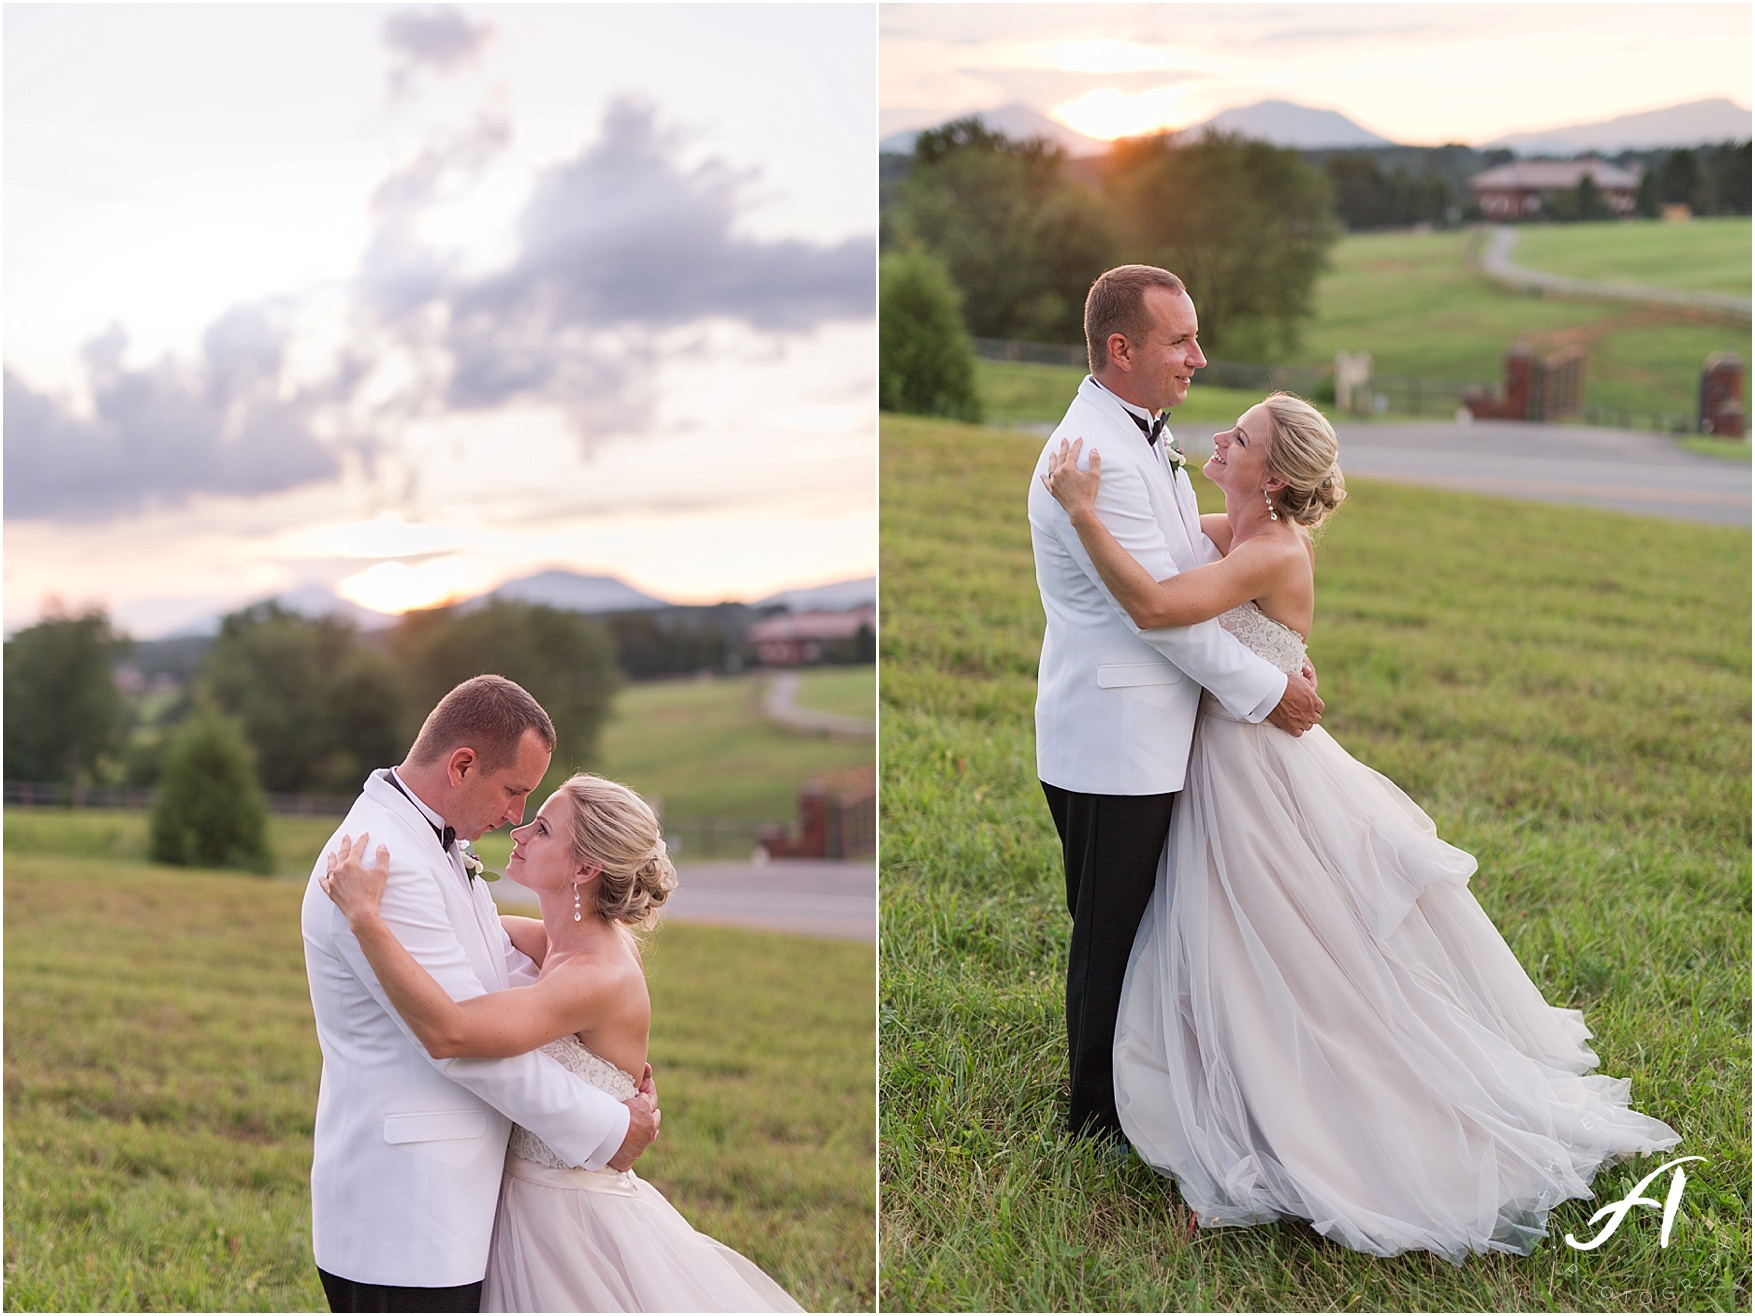 Gorgeous bride and groom sunset photos at the Trivium Estate in Forest, Virginia || Ashley Eiban Photography